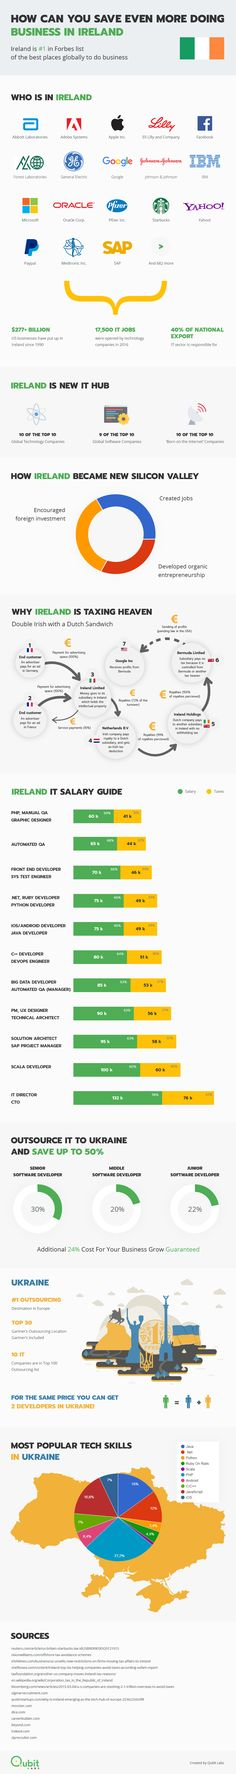 Irish Tax Heaven for Business: How Companies Save Up Money #Infographic #Business #Ireland